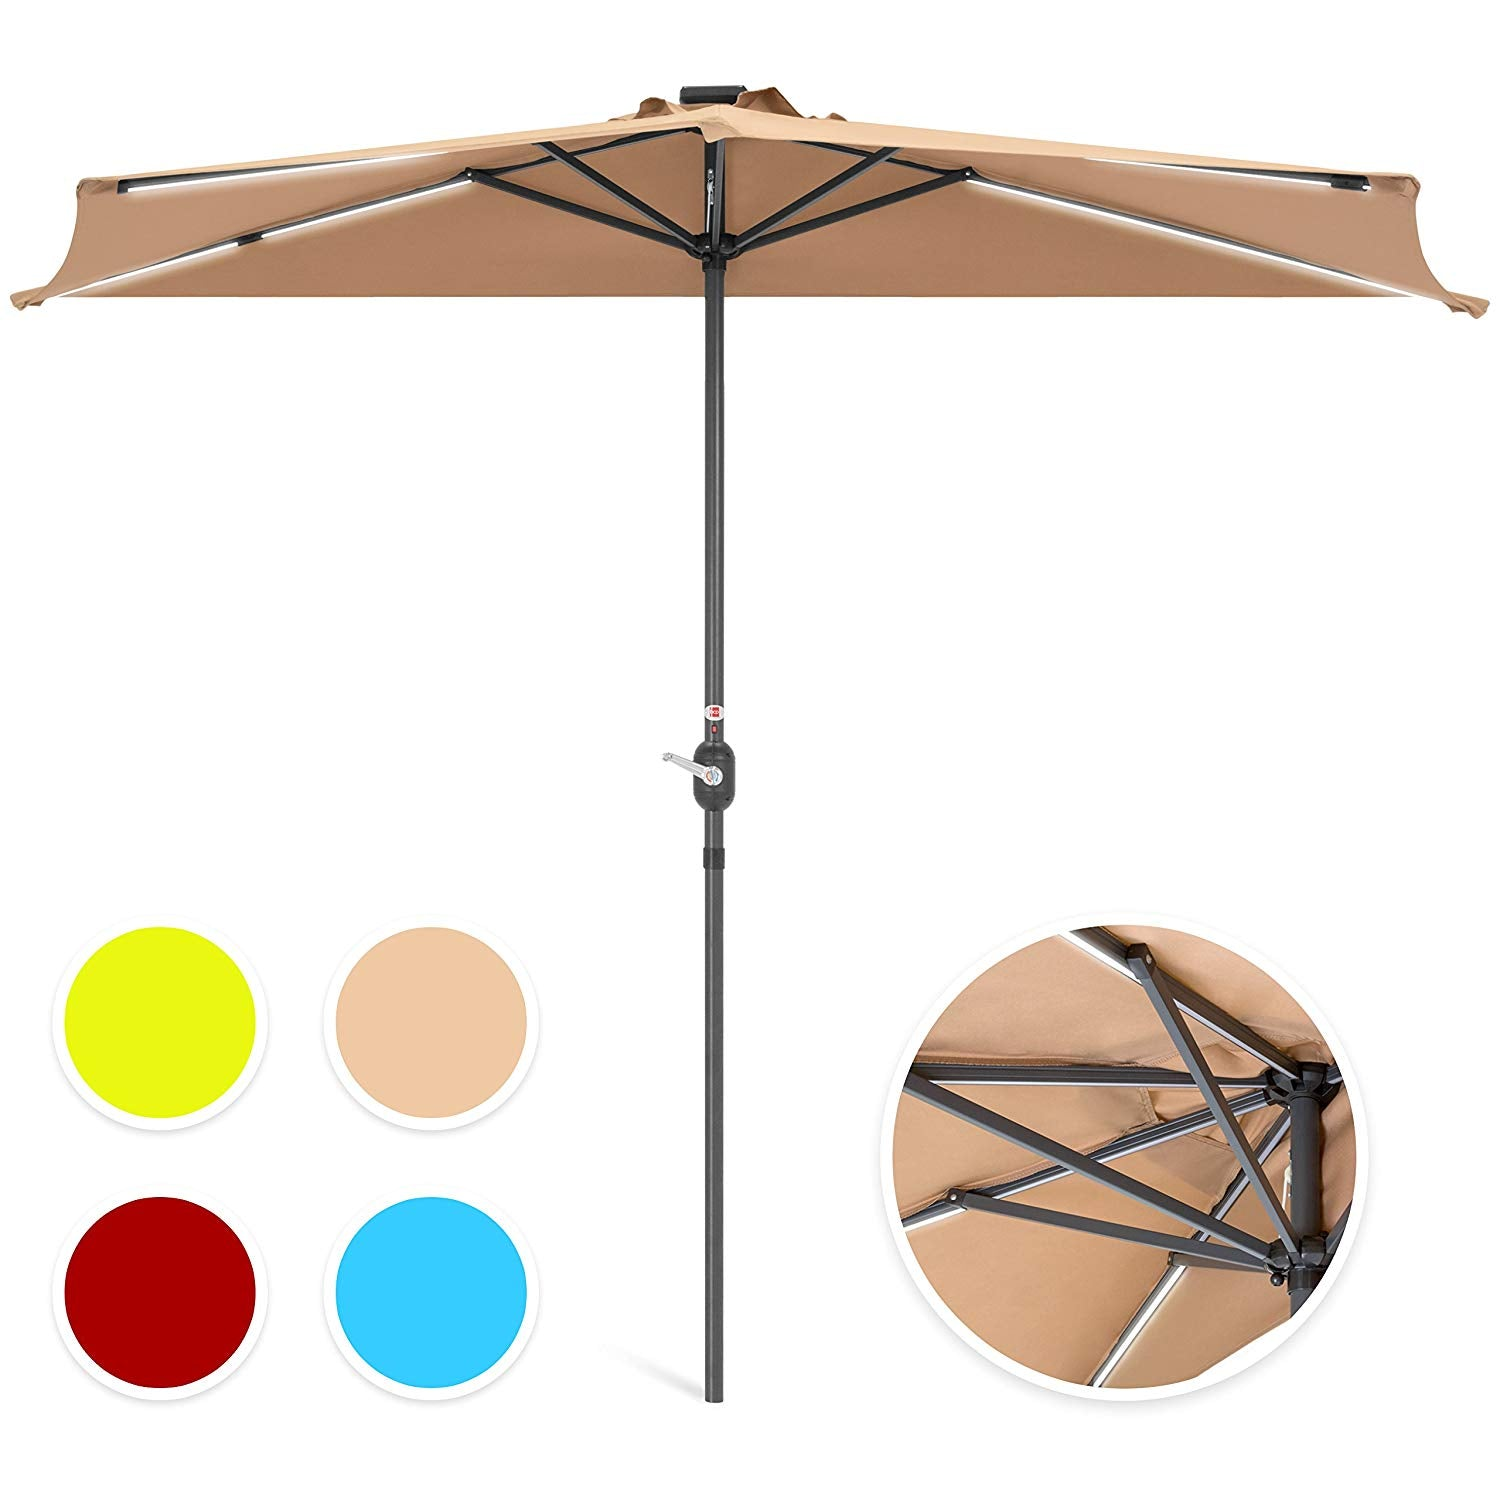 Best Choice Products 8.5ft Solar LED Strip Lighted Half Patio Umbrella - Tan